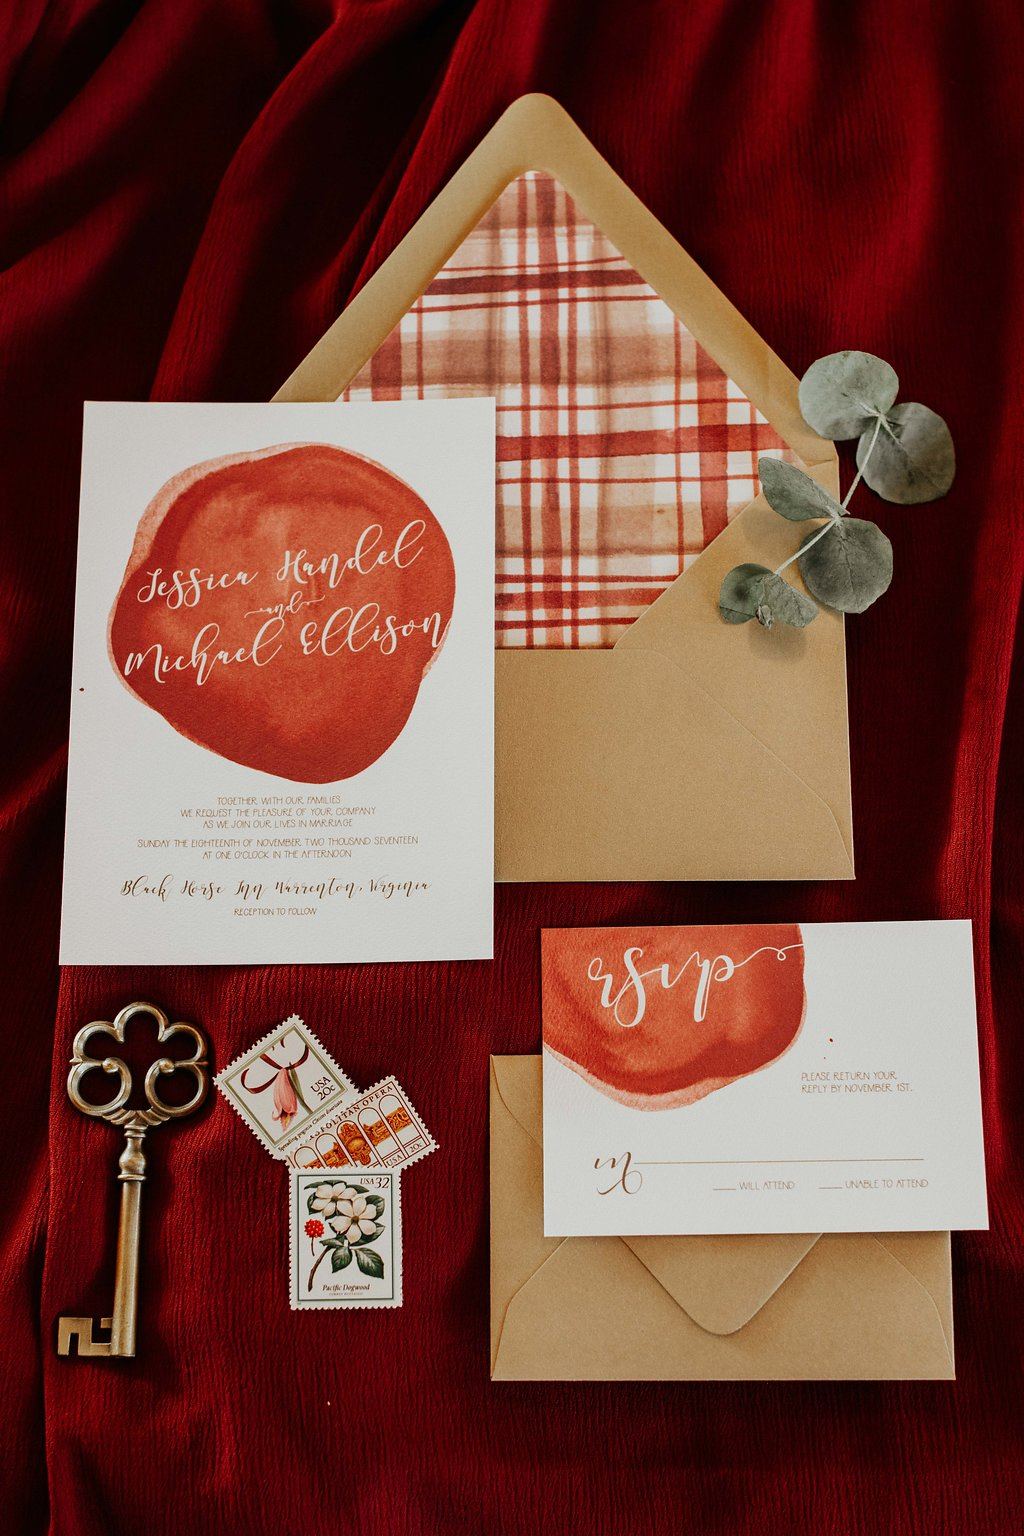 Gold + Red Wedding Invitation - Black Horse Inn Virginia Wedding - Northern Virginia Wedding Photographer - Gorgeous Moody Red and Gold Wedding